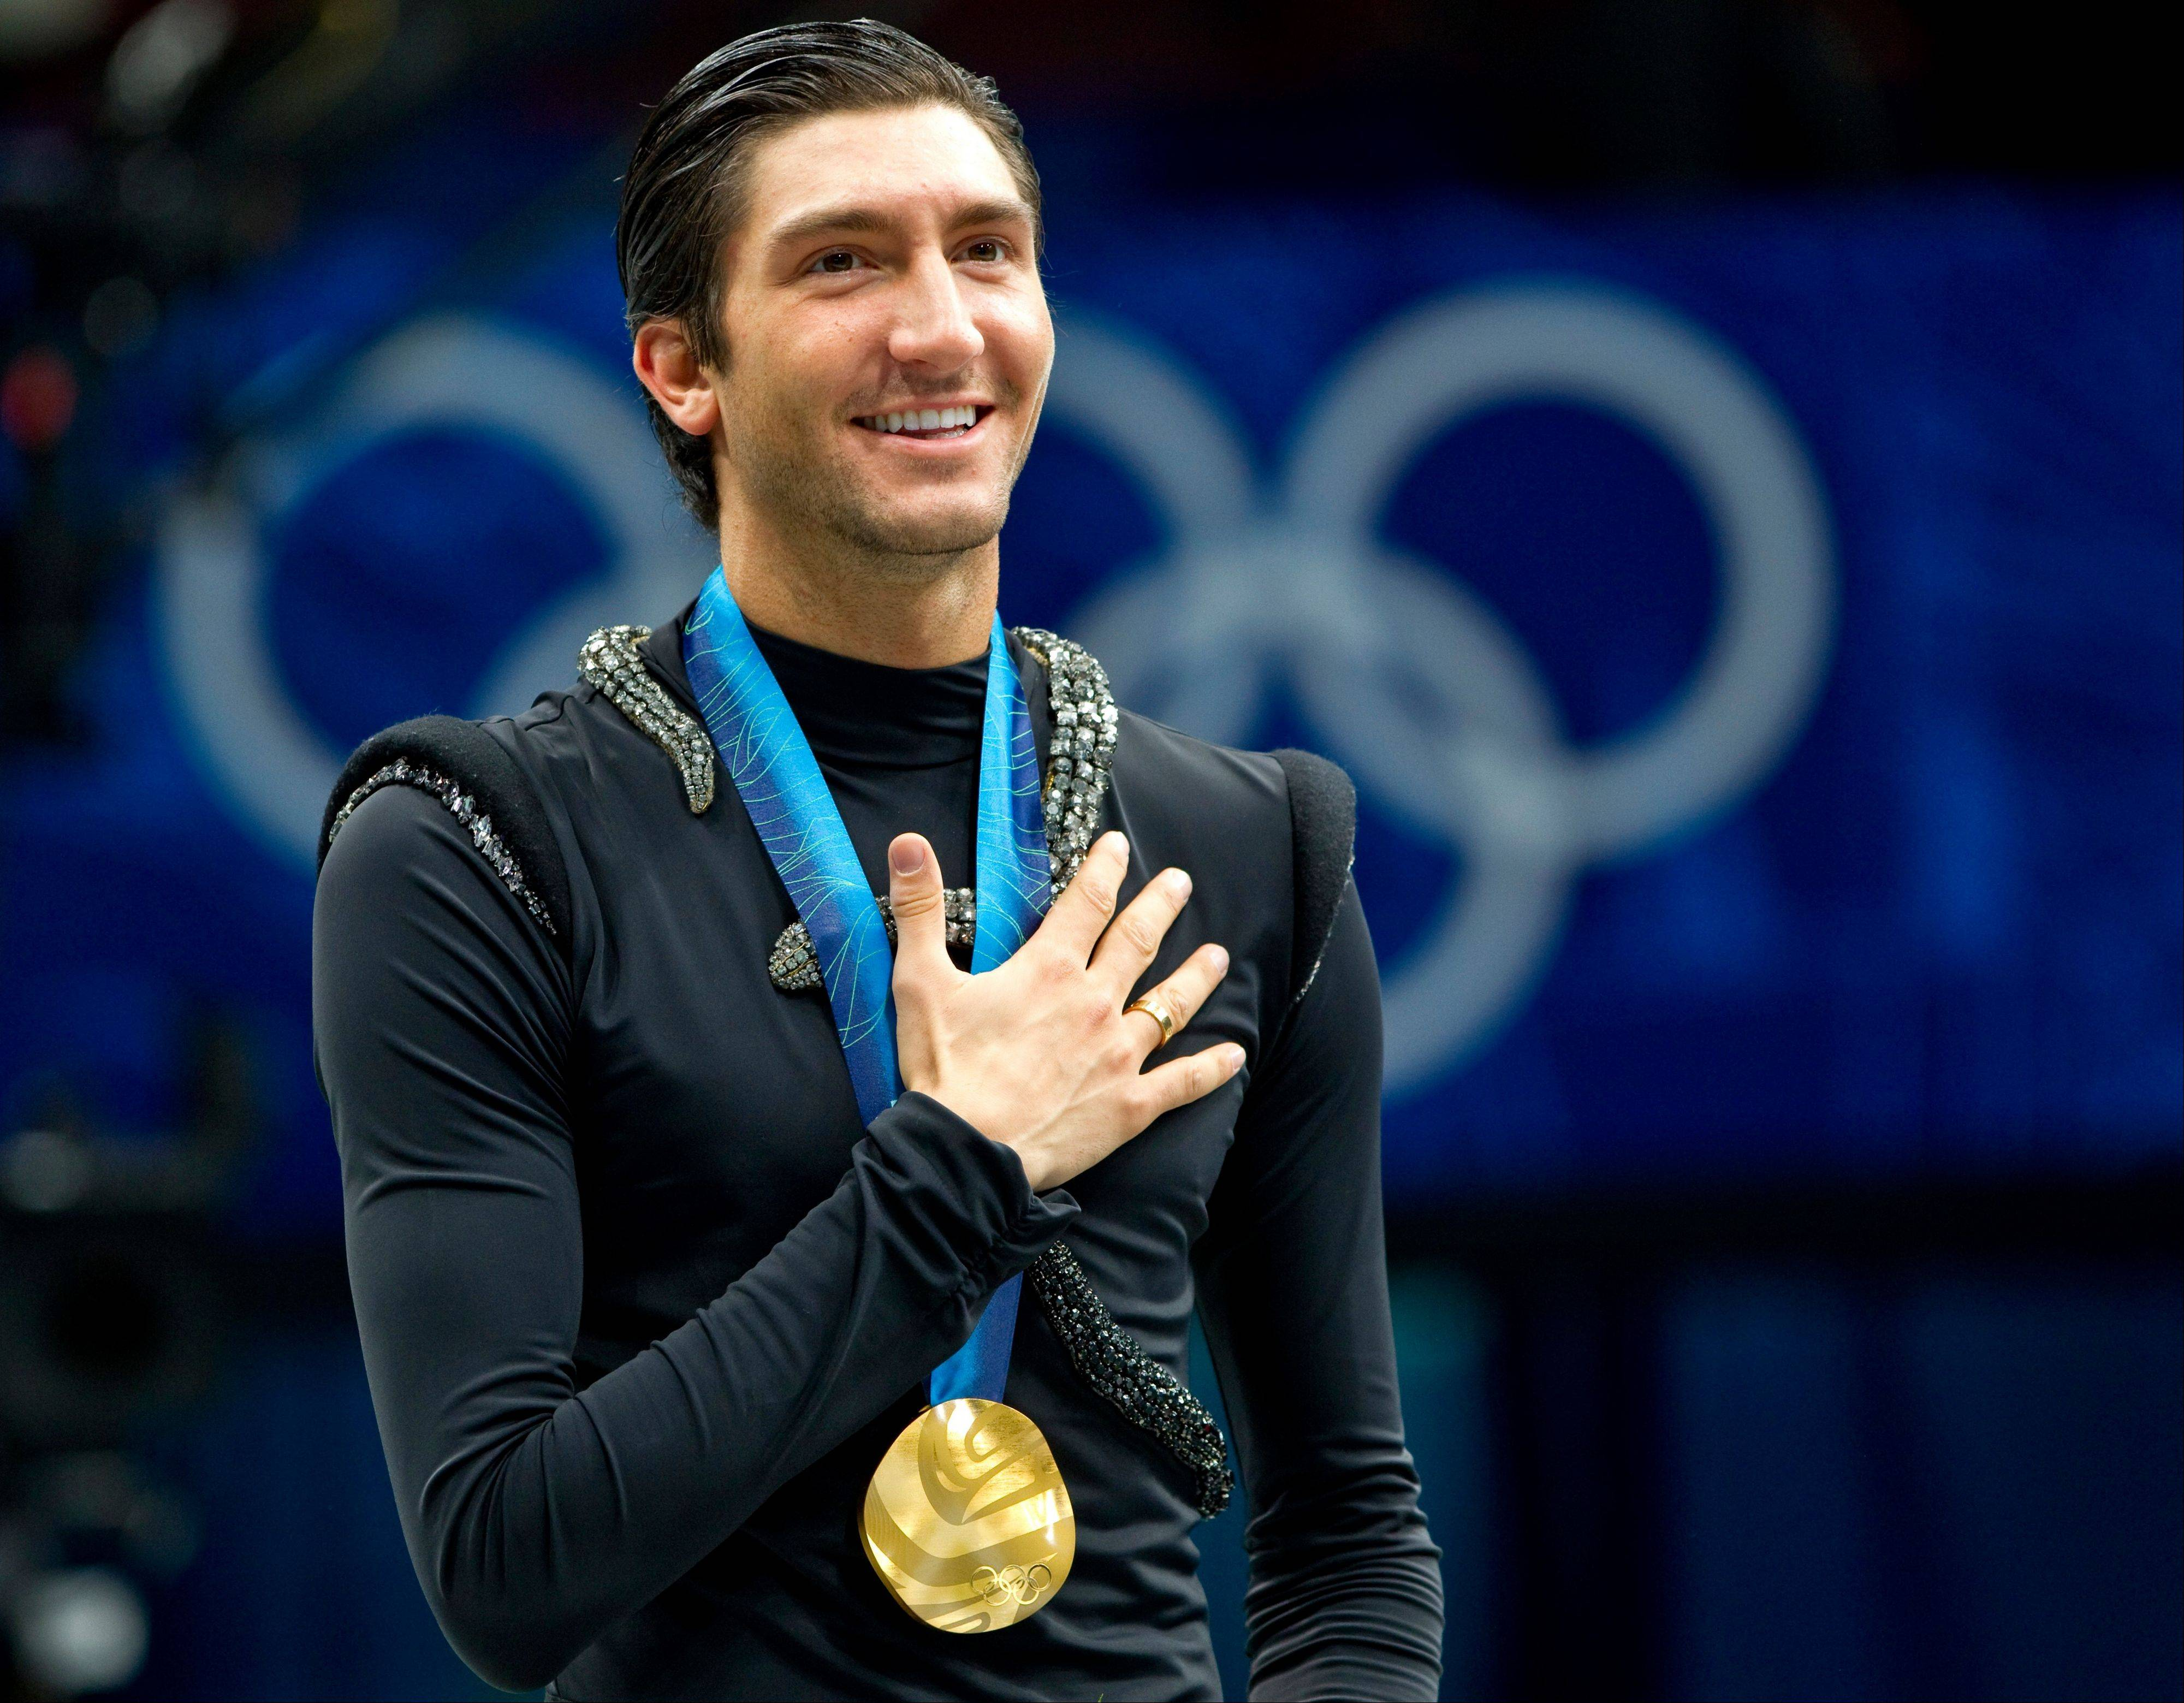 Olympic gold medalist Evan Lysacek of Naperville will be in Sochi after all, although he won�t be defending his gold medal from 2010 after injuries curtailed his comeback last year. He�ll be �wearing many hats� in Russia, he says.